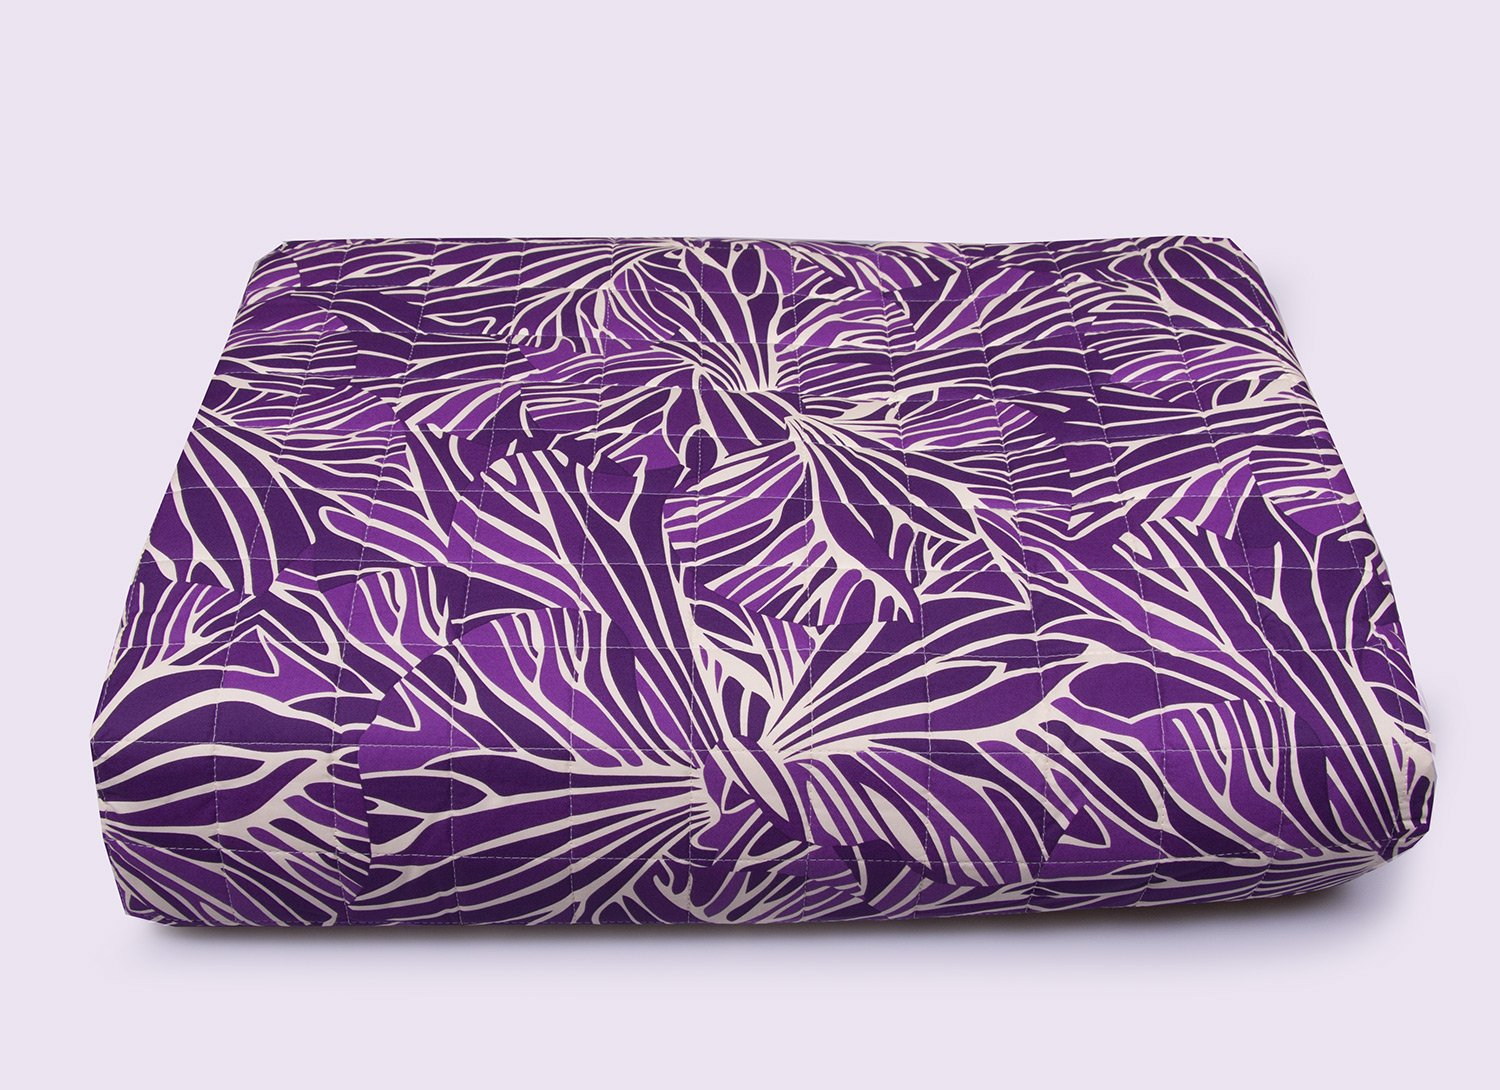 Missoni bedspreads with stylized leaves on purple colors for double bed